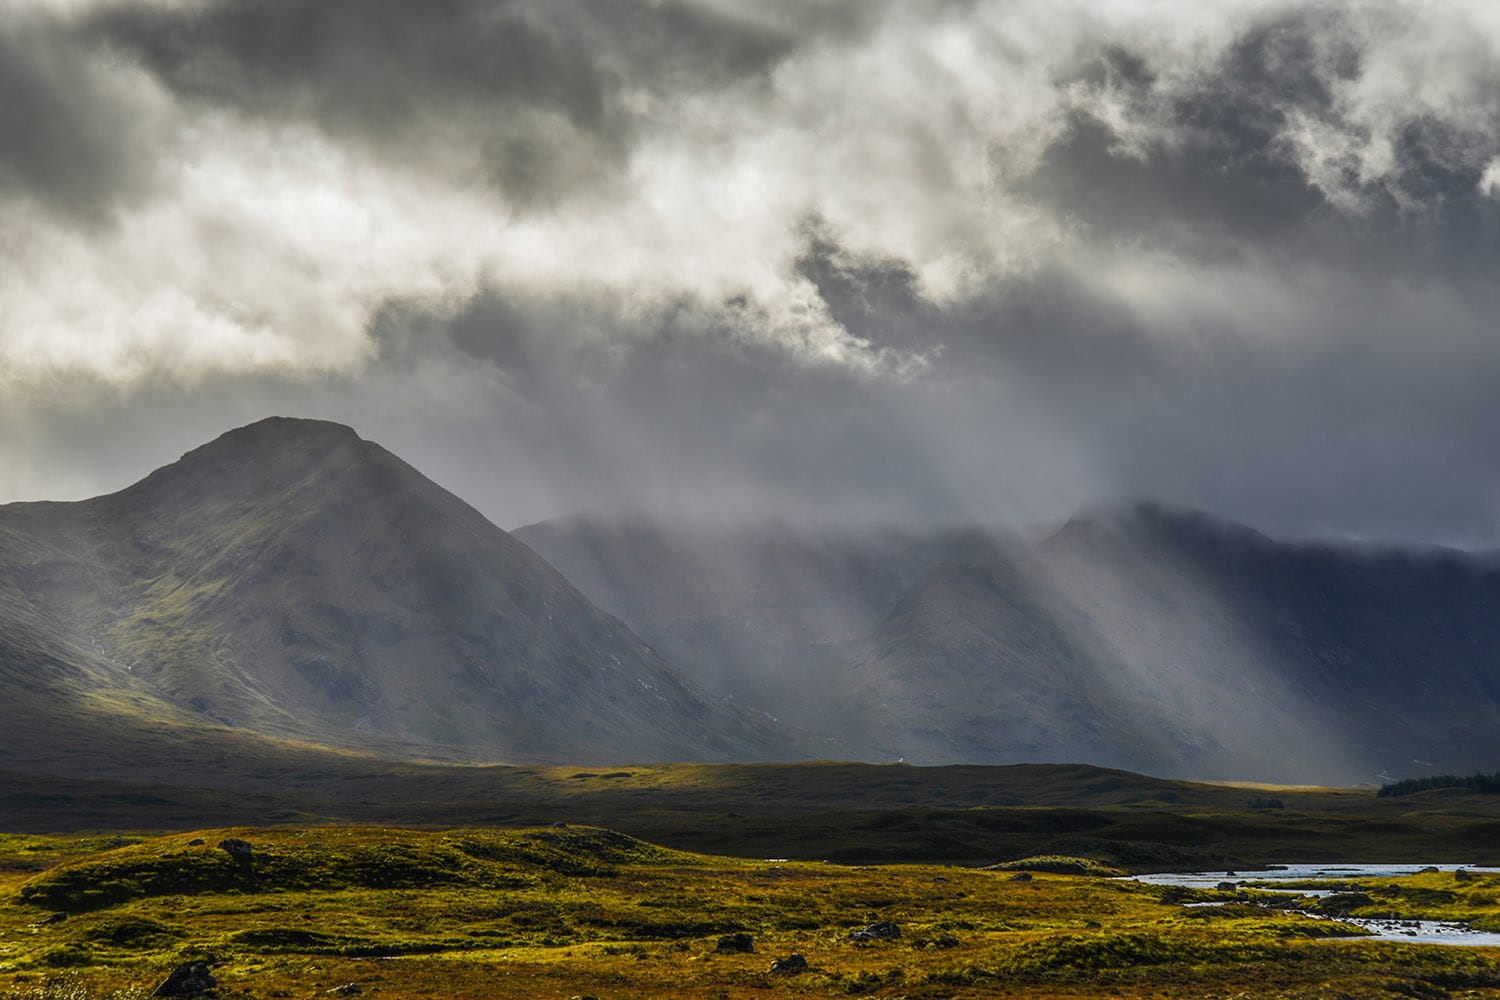 A stunning photograph of Rannoch Moor which can be visited on a private tour of Scotland